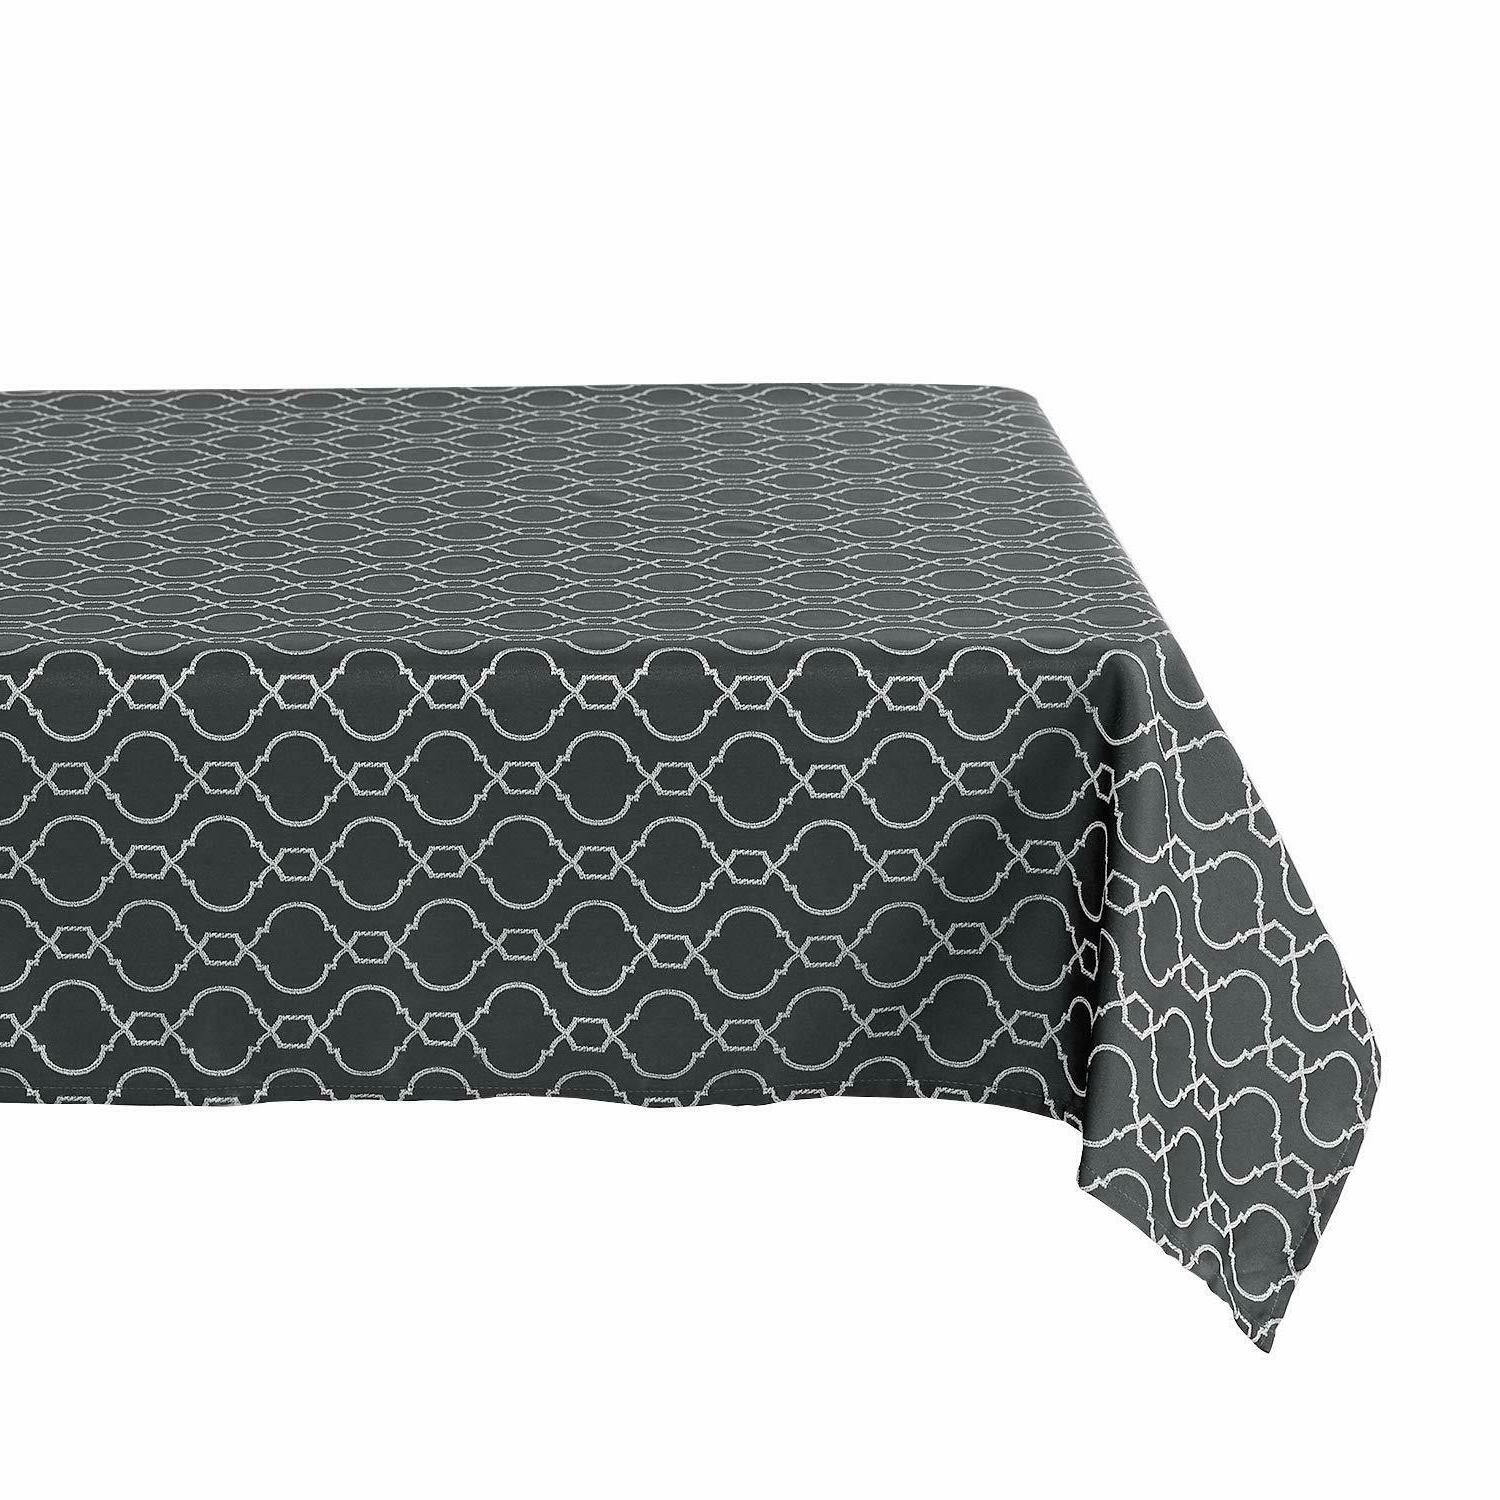 Tablecloths Table Jacquard Spillproof Polyester